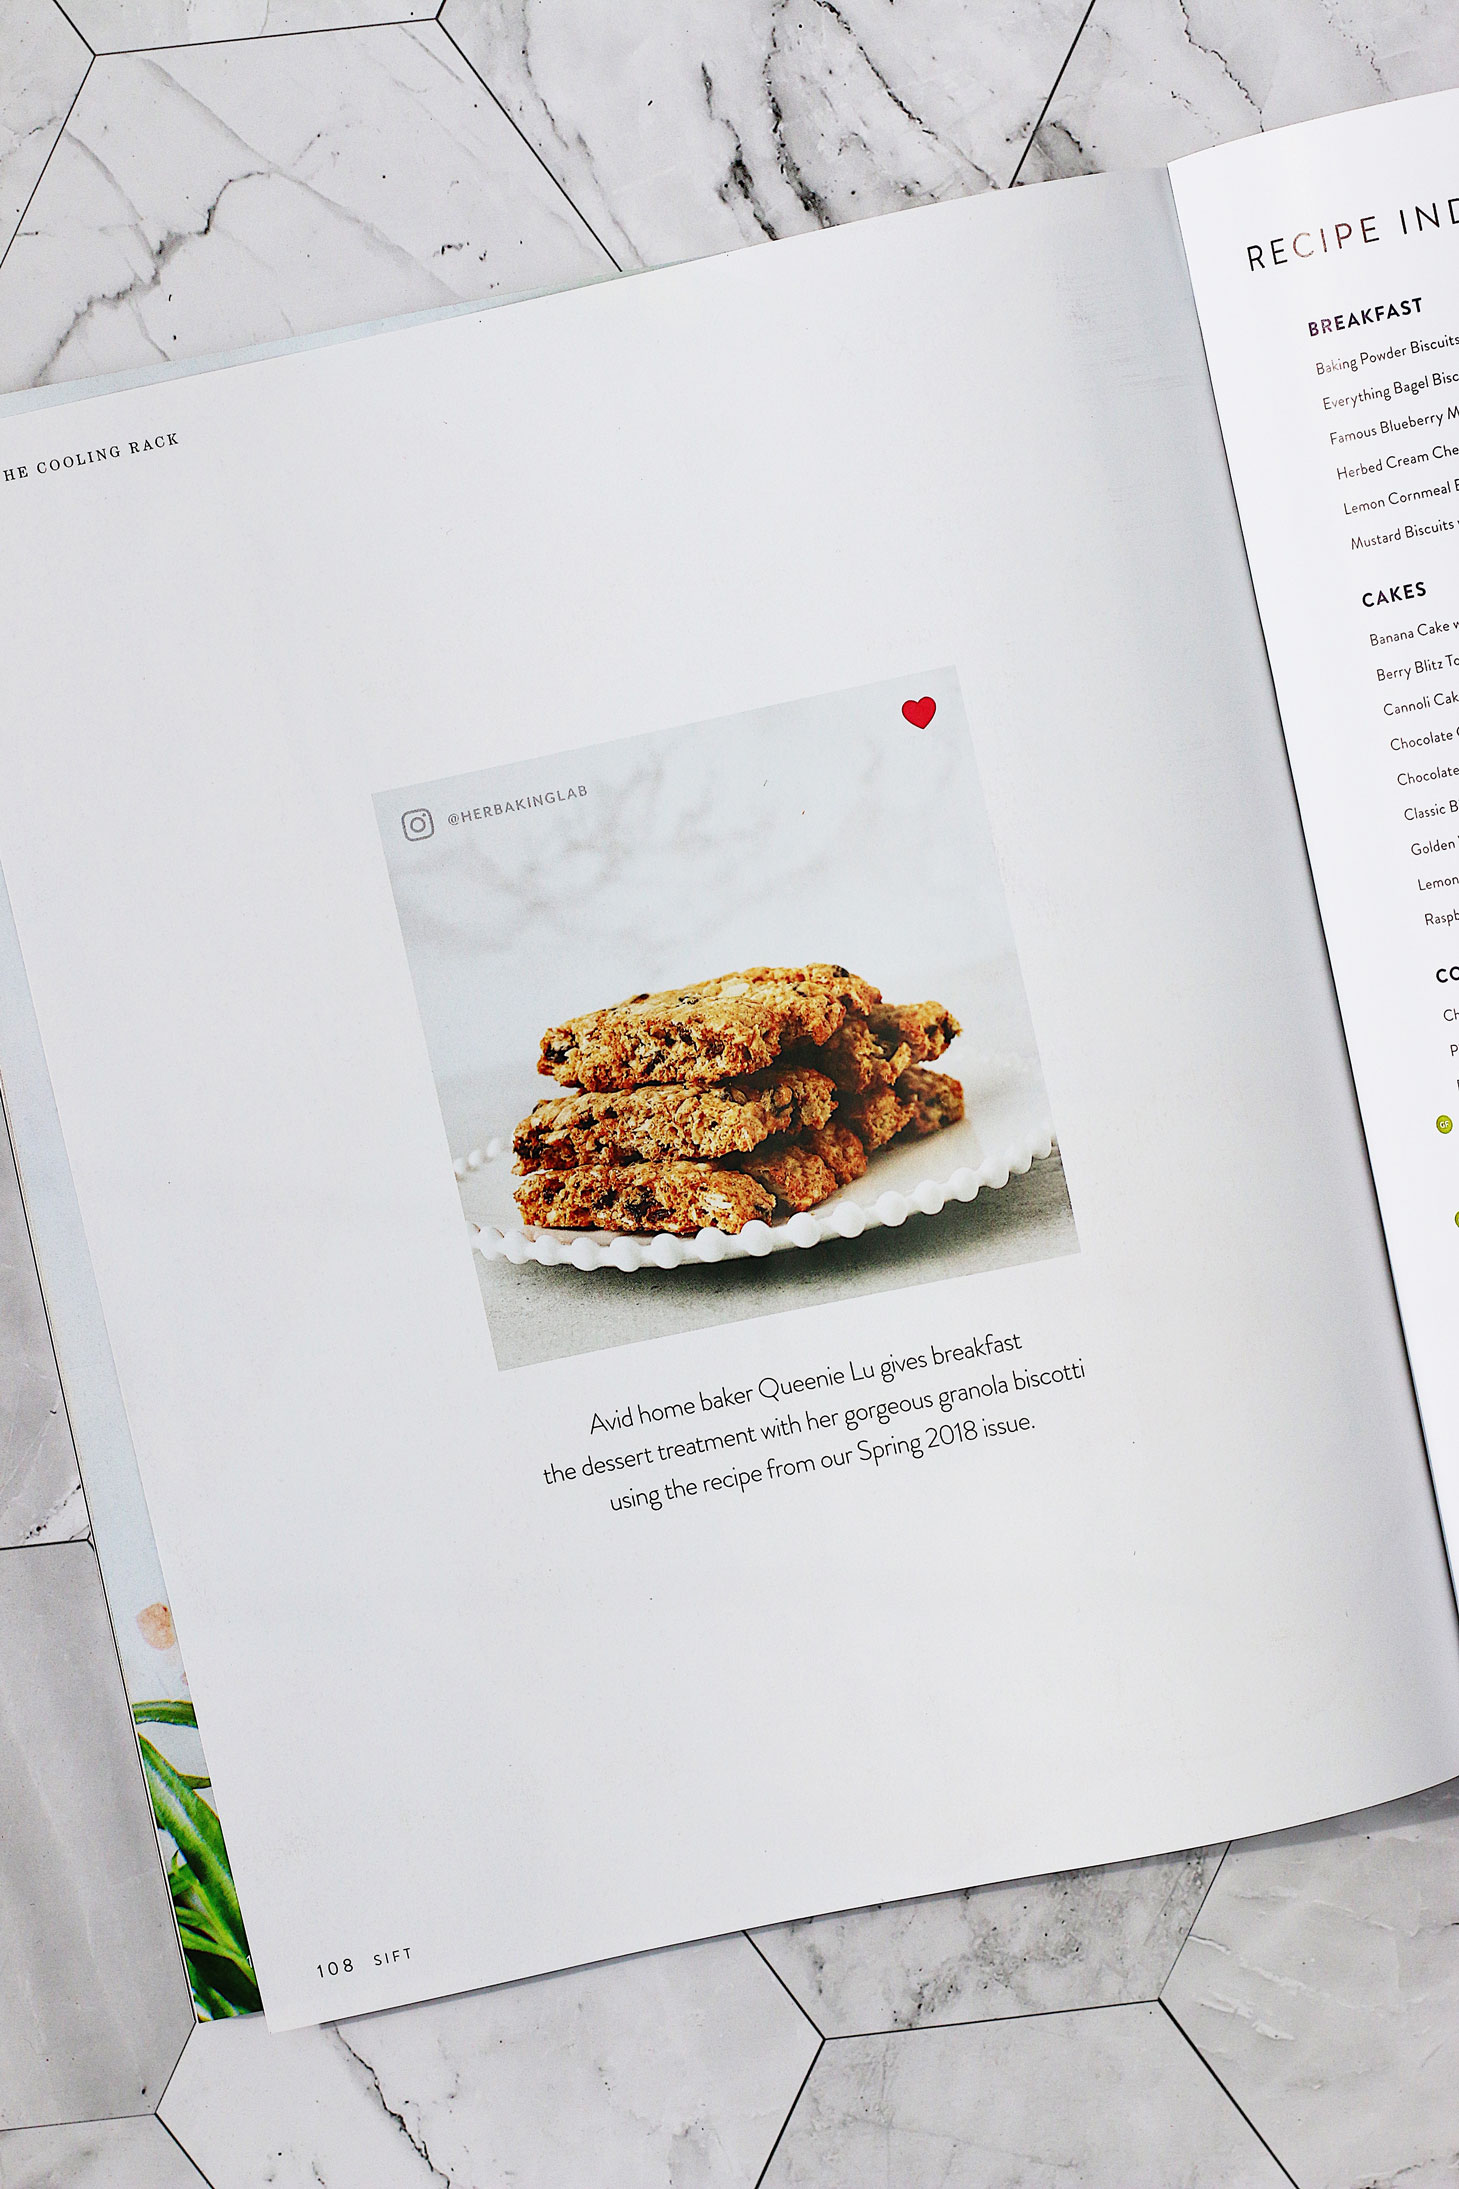 herbakinglab-granola-biscotti-picture-in-Sift-Magazine-Spring-Issue-2019